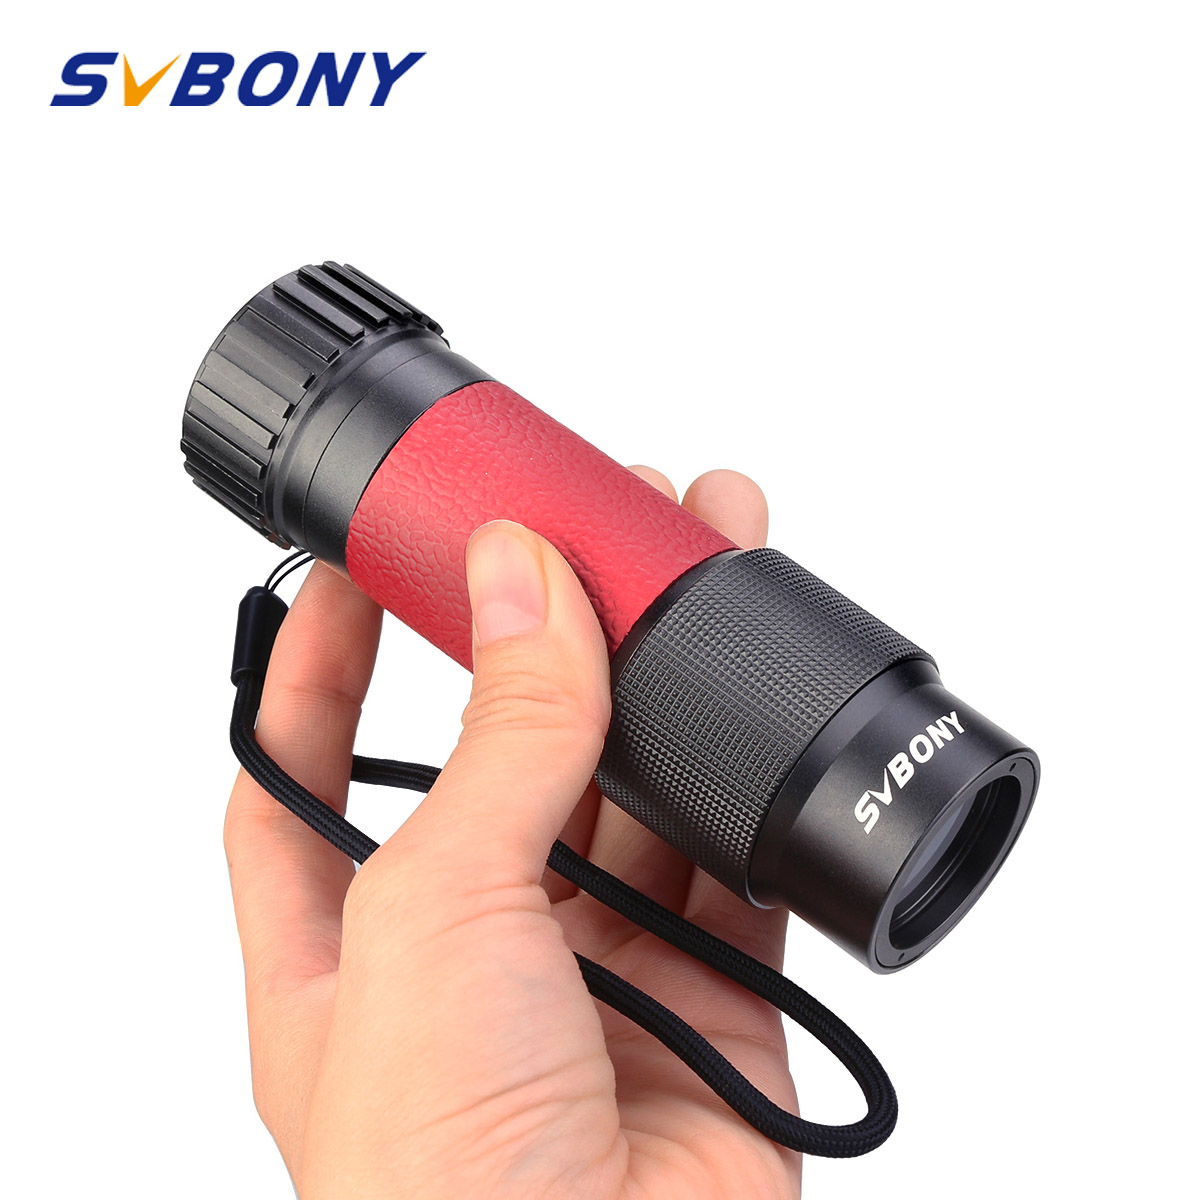 SVBONY 8x25 Monocular Handy Mini Telescope Metal Material 8 -Degree Close Observation For Opera Museum The Theater SV301 F9357A